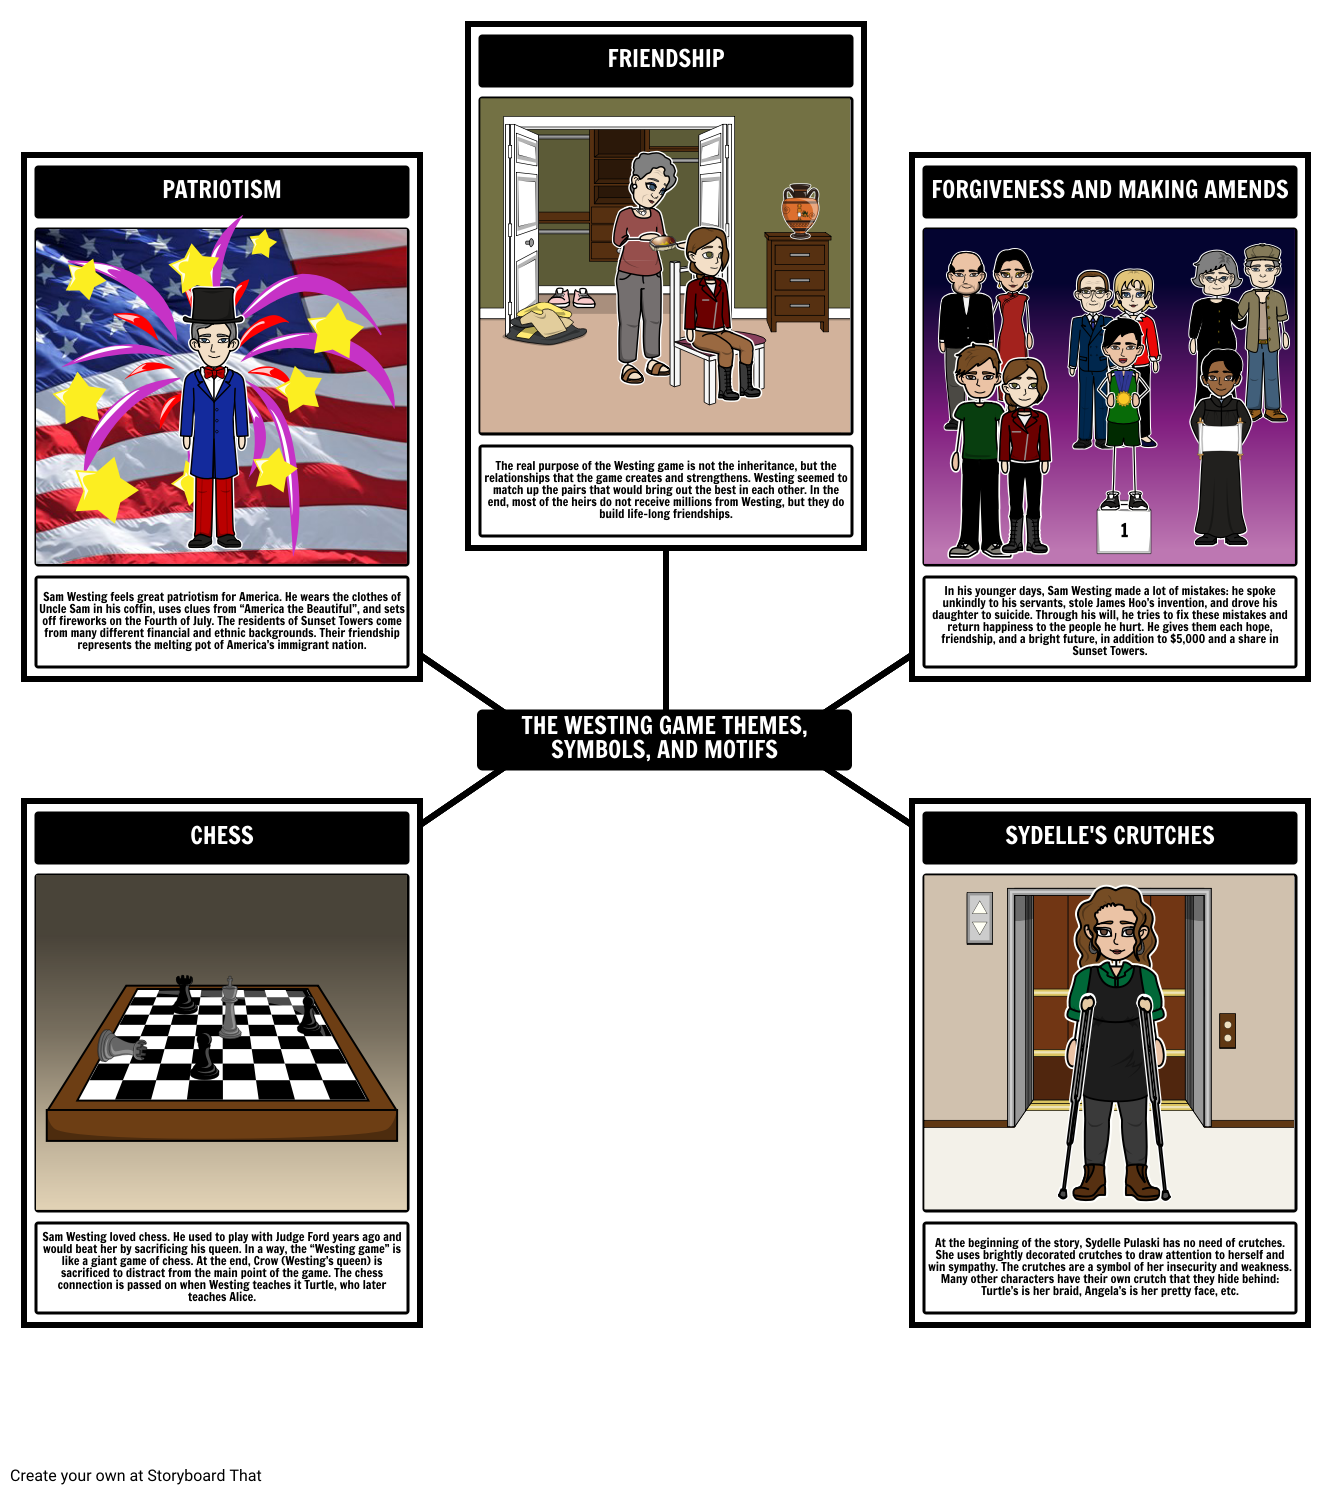 Worksheets The Westing Game Worksheets the westing game themes symbols and motifs come alive when you use a storyboard in this activi